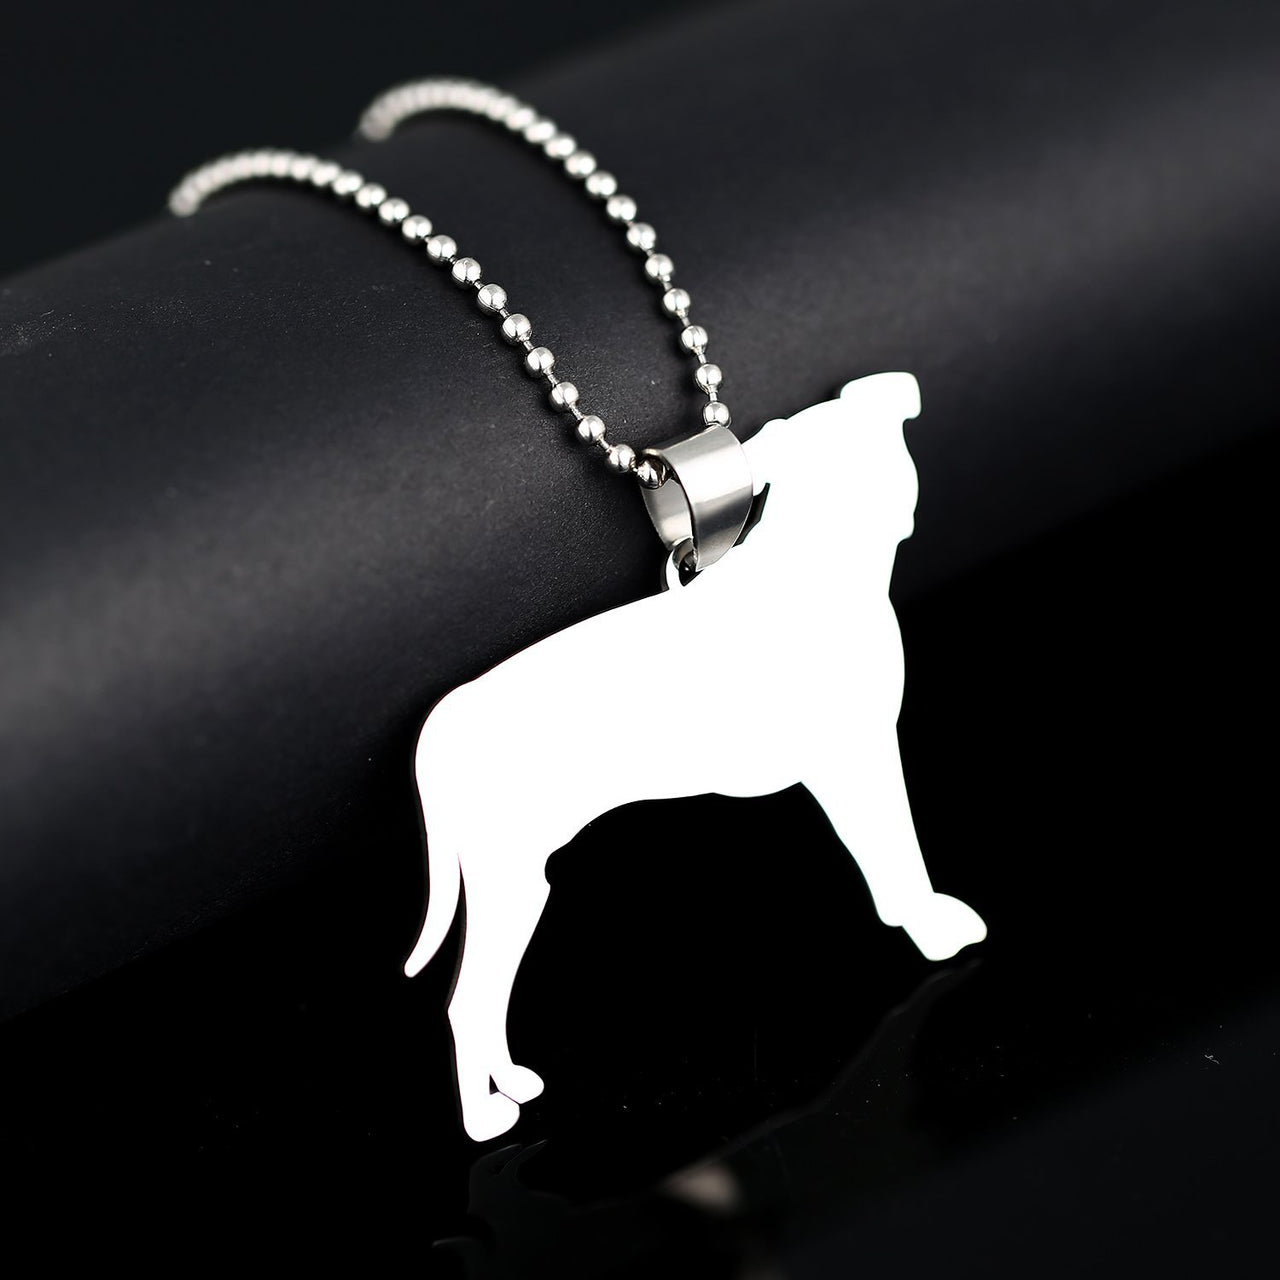 Big Size Stainless Steel Natural Ear Pitbull Dog Silhouette Pet Dog Tag Breed Collar Charm Pendant Necklace